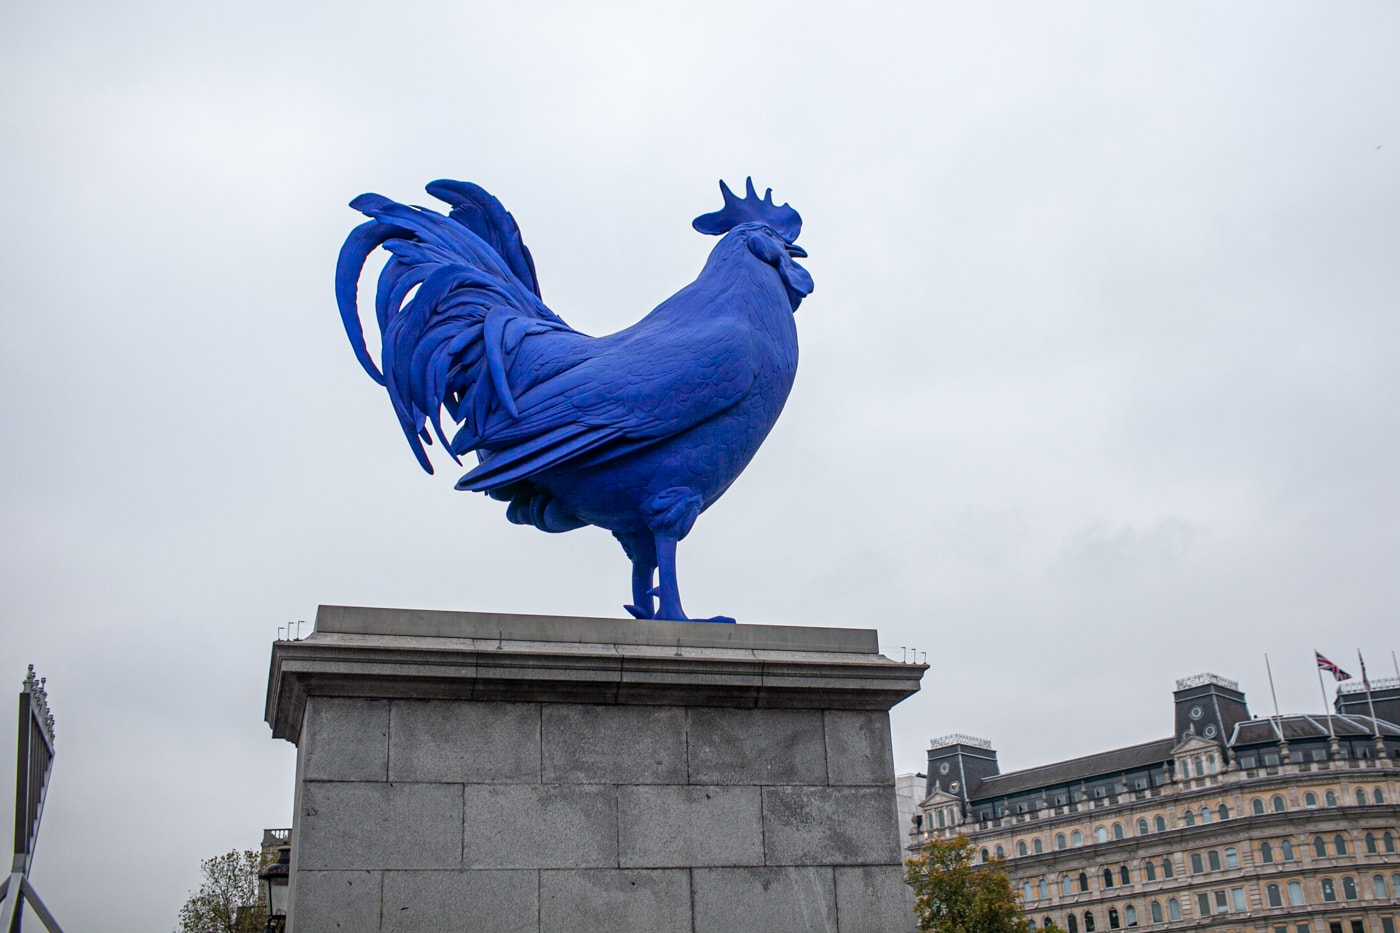 Katharina Fristc's Hahn/Cock - a big blue rooster -  in Trafalgar Square in London, England.